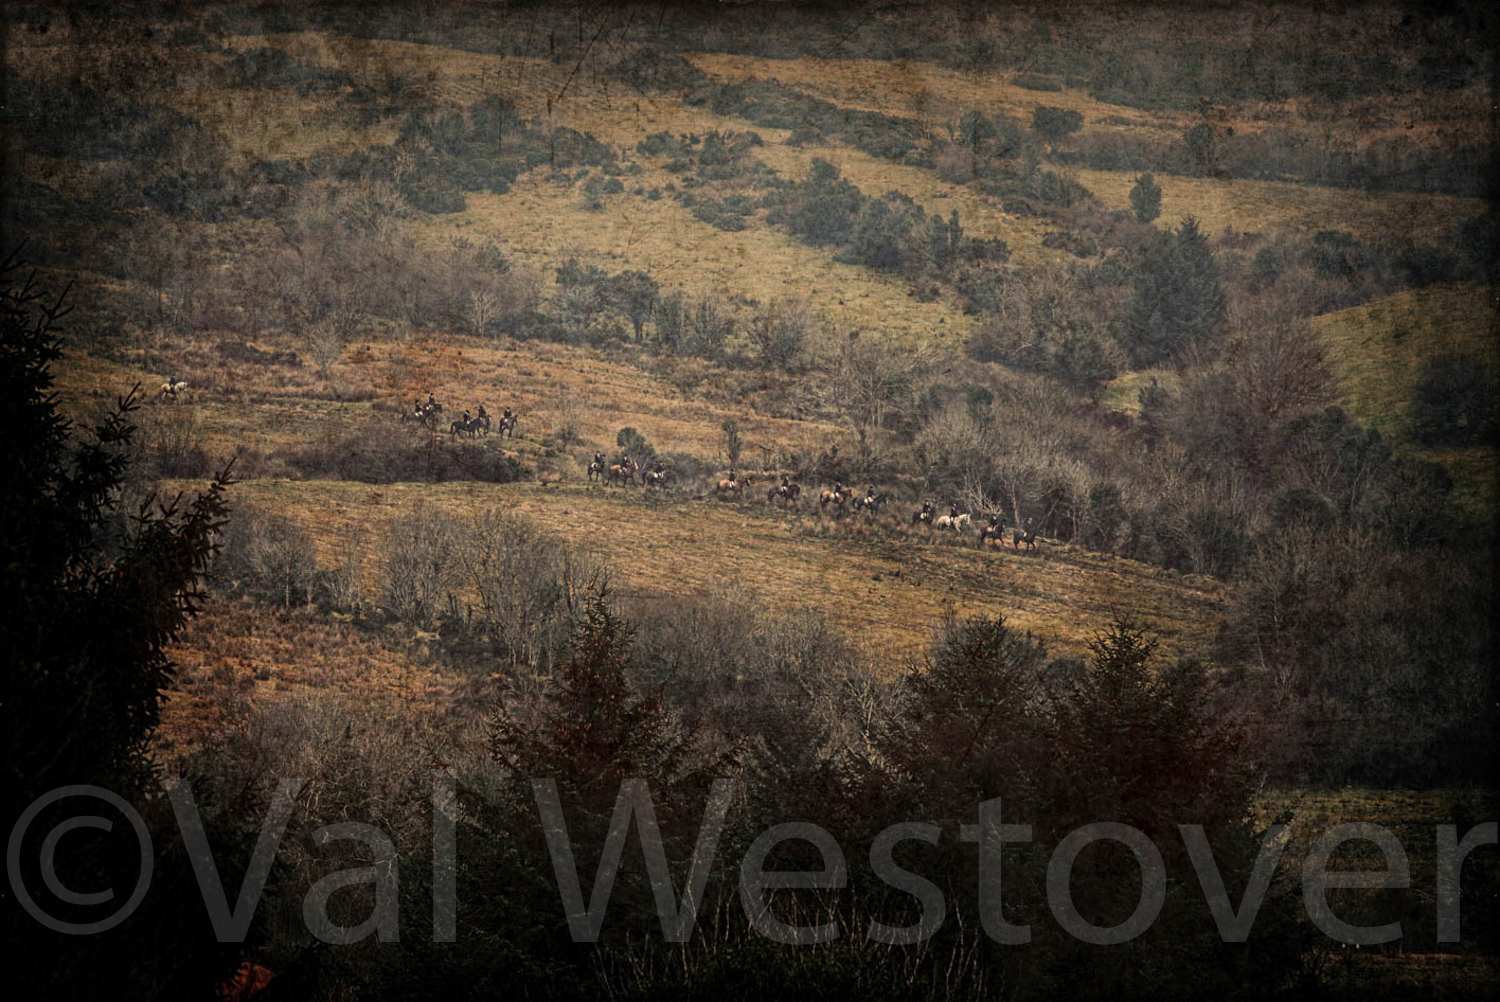 val-westover-photography--40.jpg